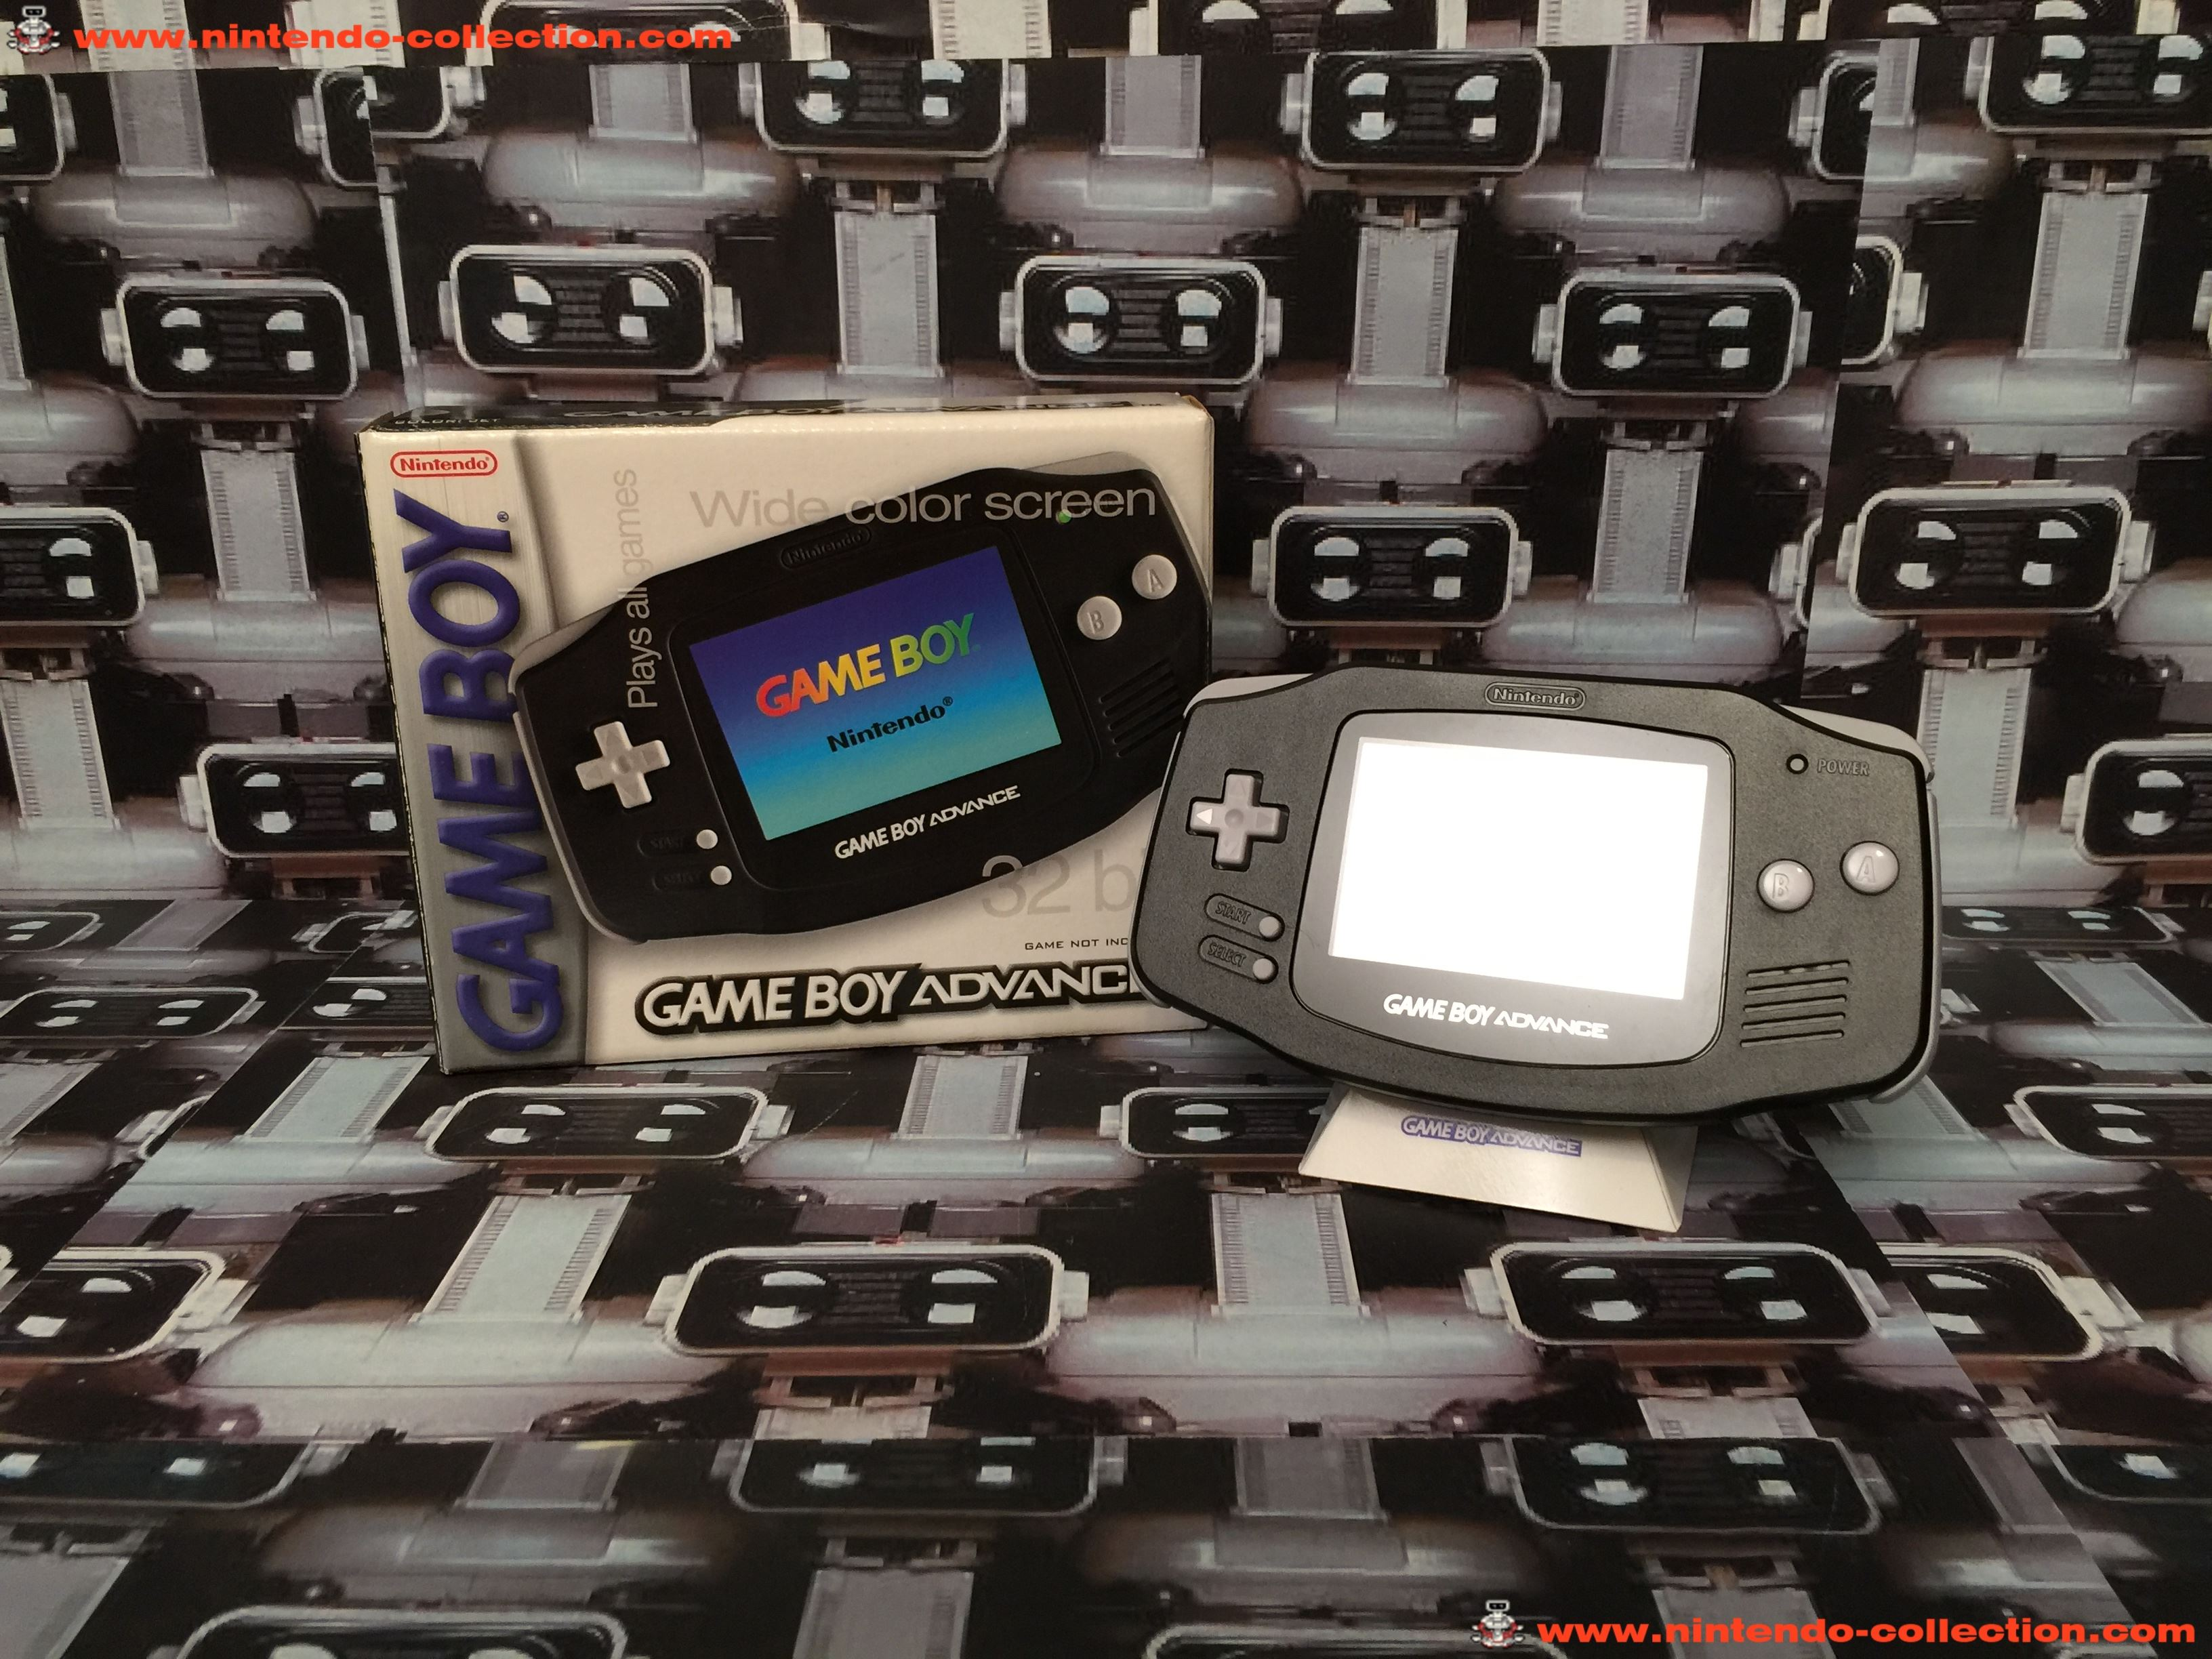 www.nintendo-collection.com - Gameboy Advance GBA E reader Bundle Limited edition Black Noir Austali